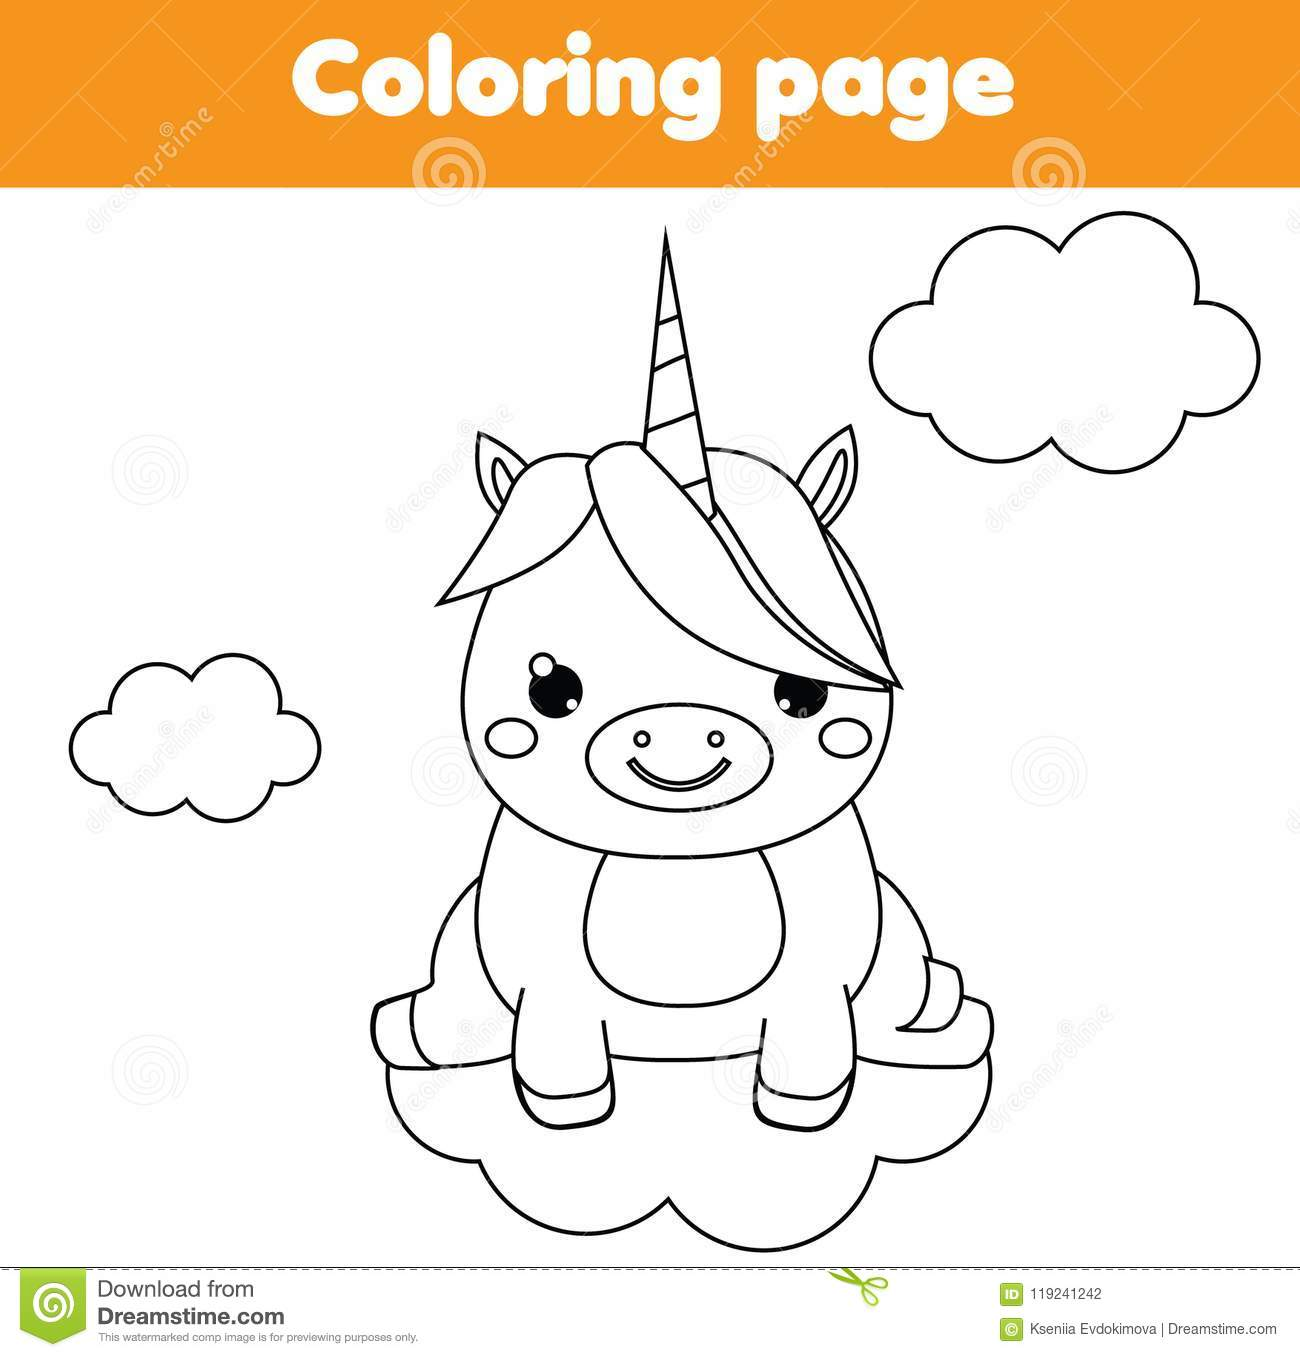 Unicorn Coloring Page. Educational Children Game. Drawing ...